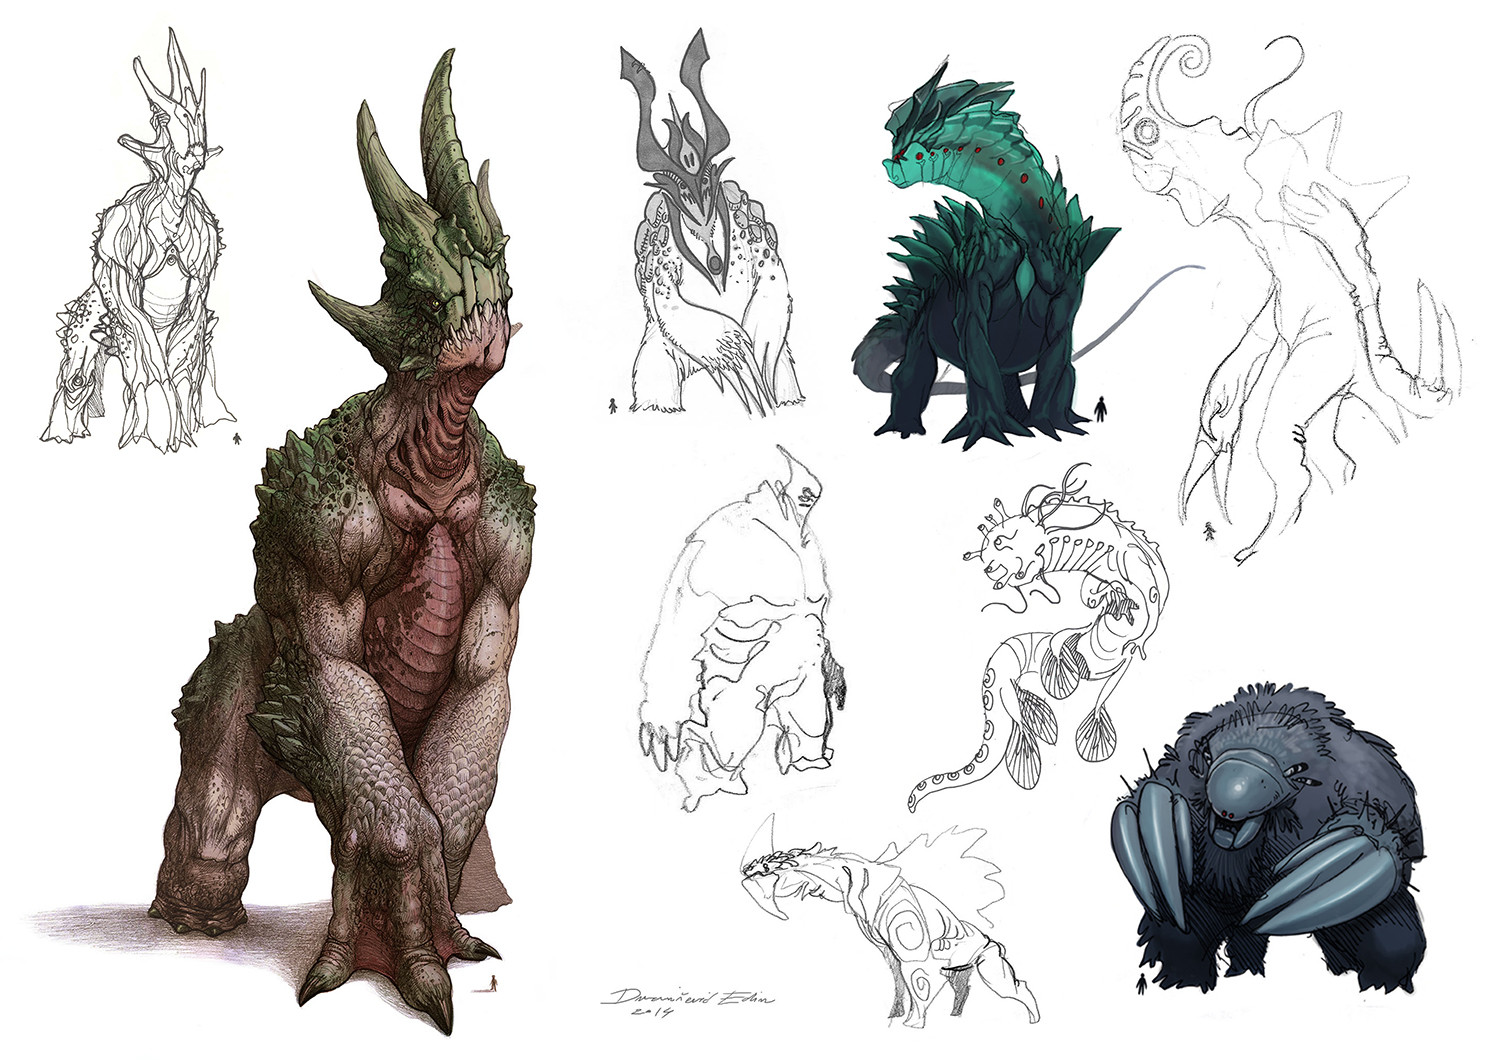 Different explorations of the creature